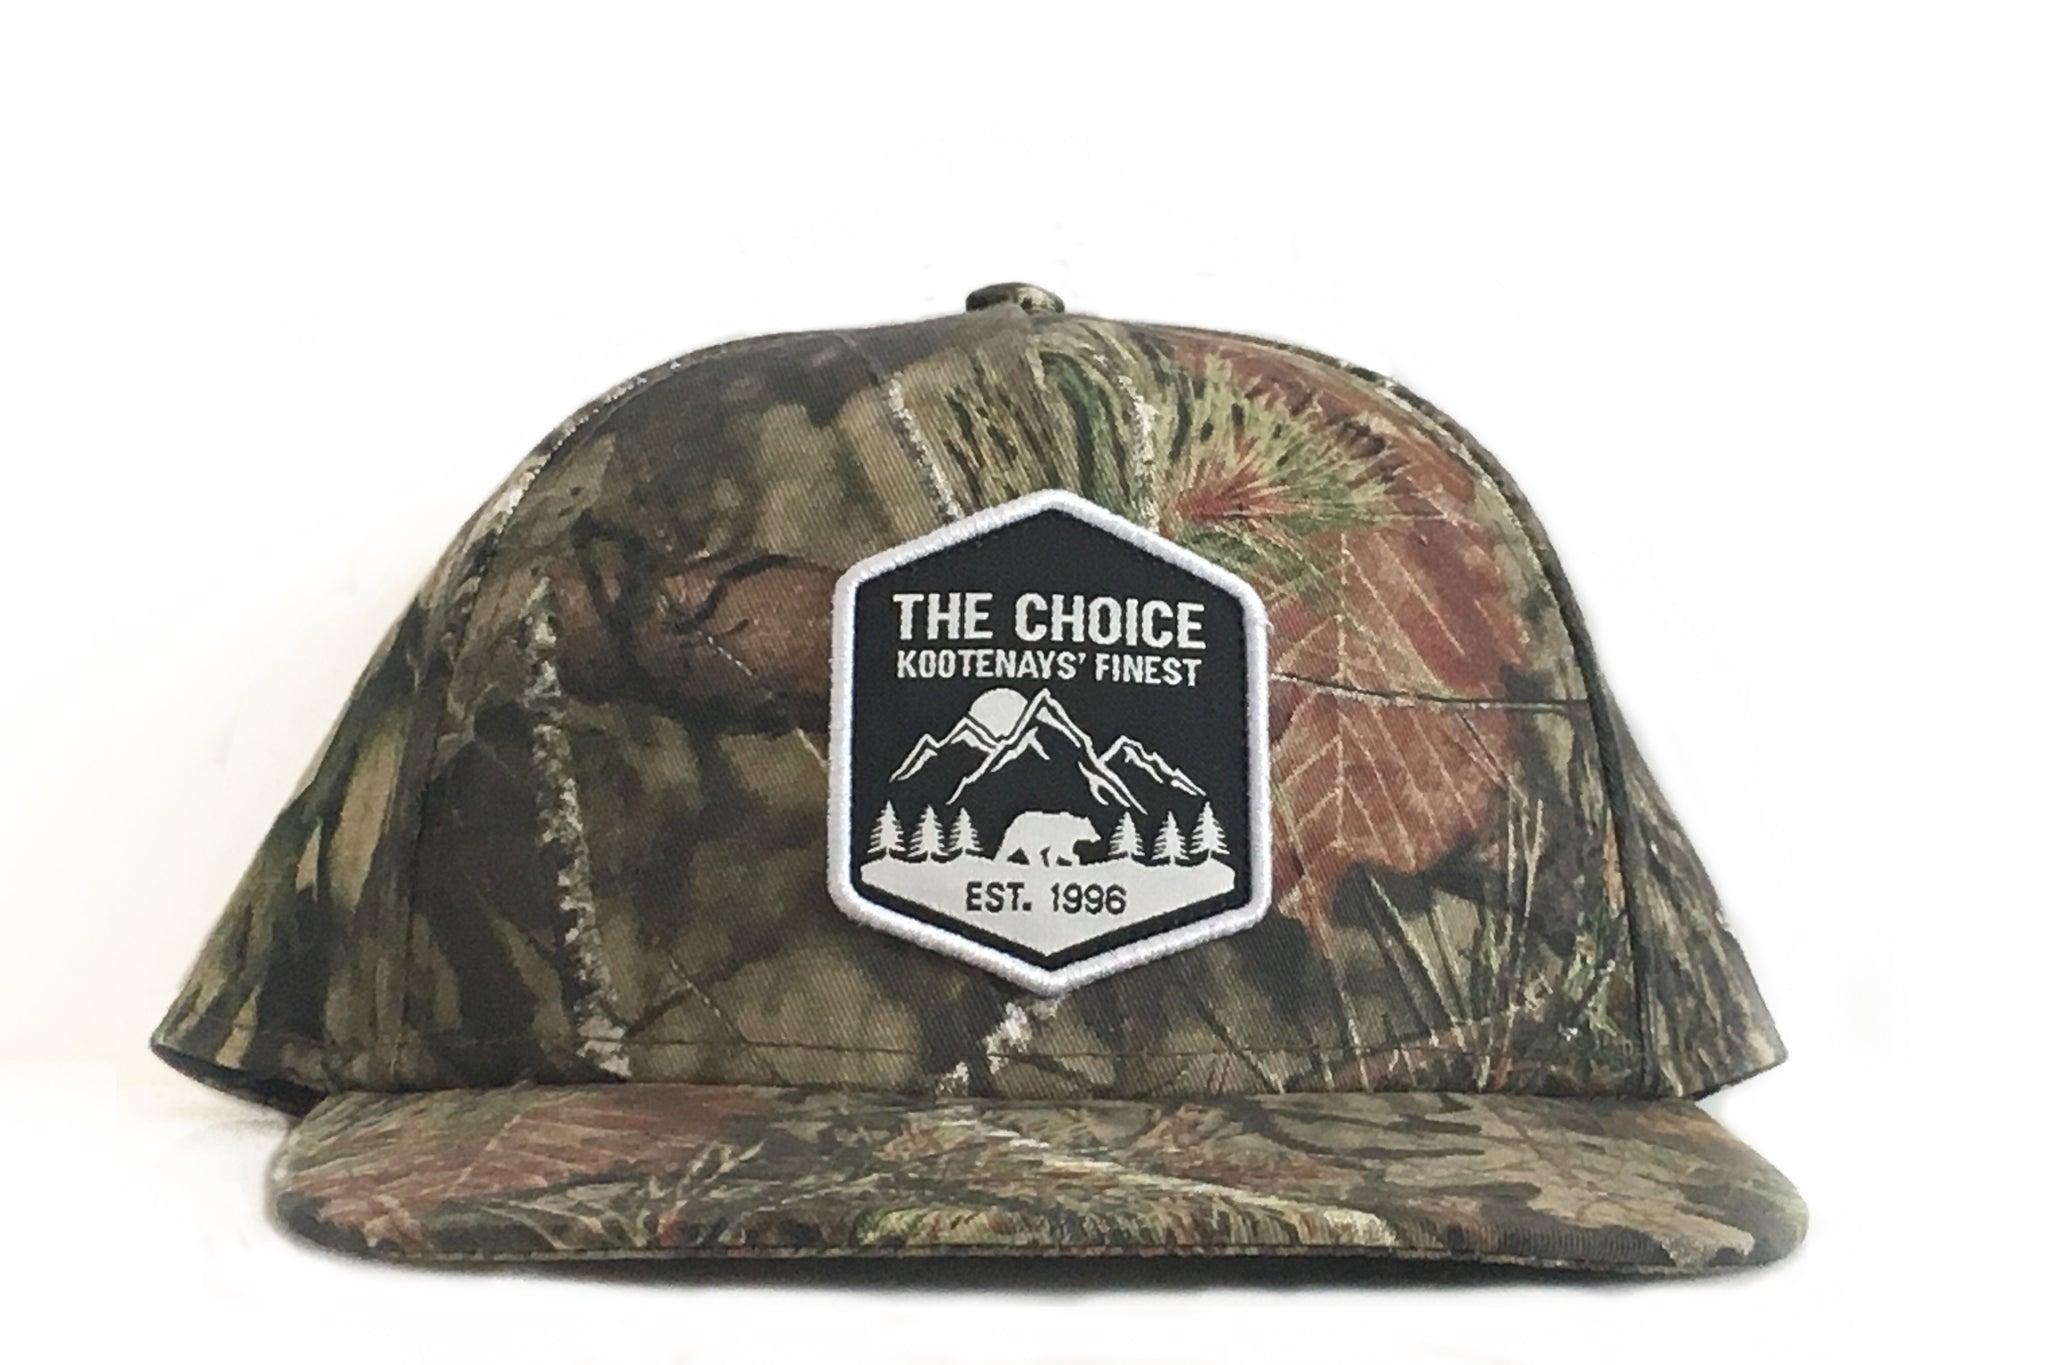 The Choice Kootenays' Finest Hat Mossy Oak Camo